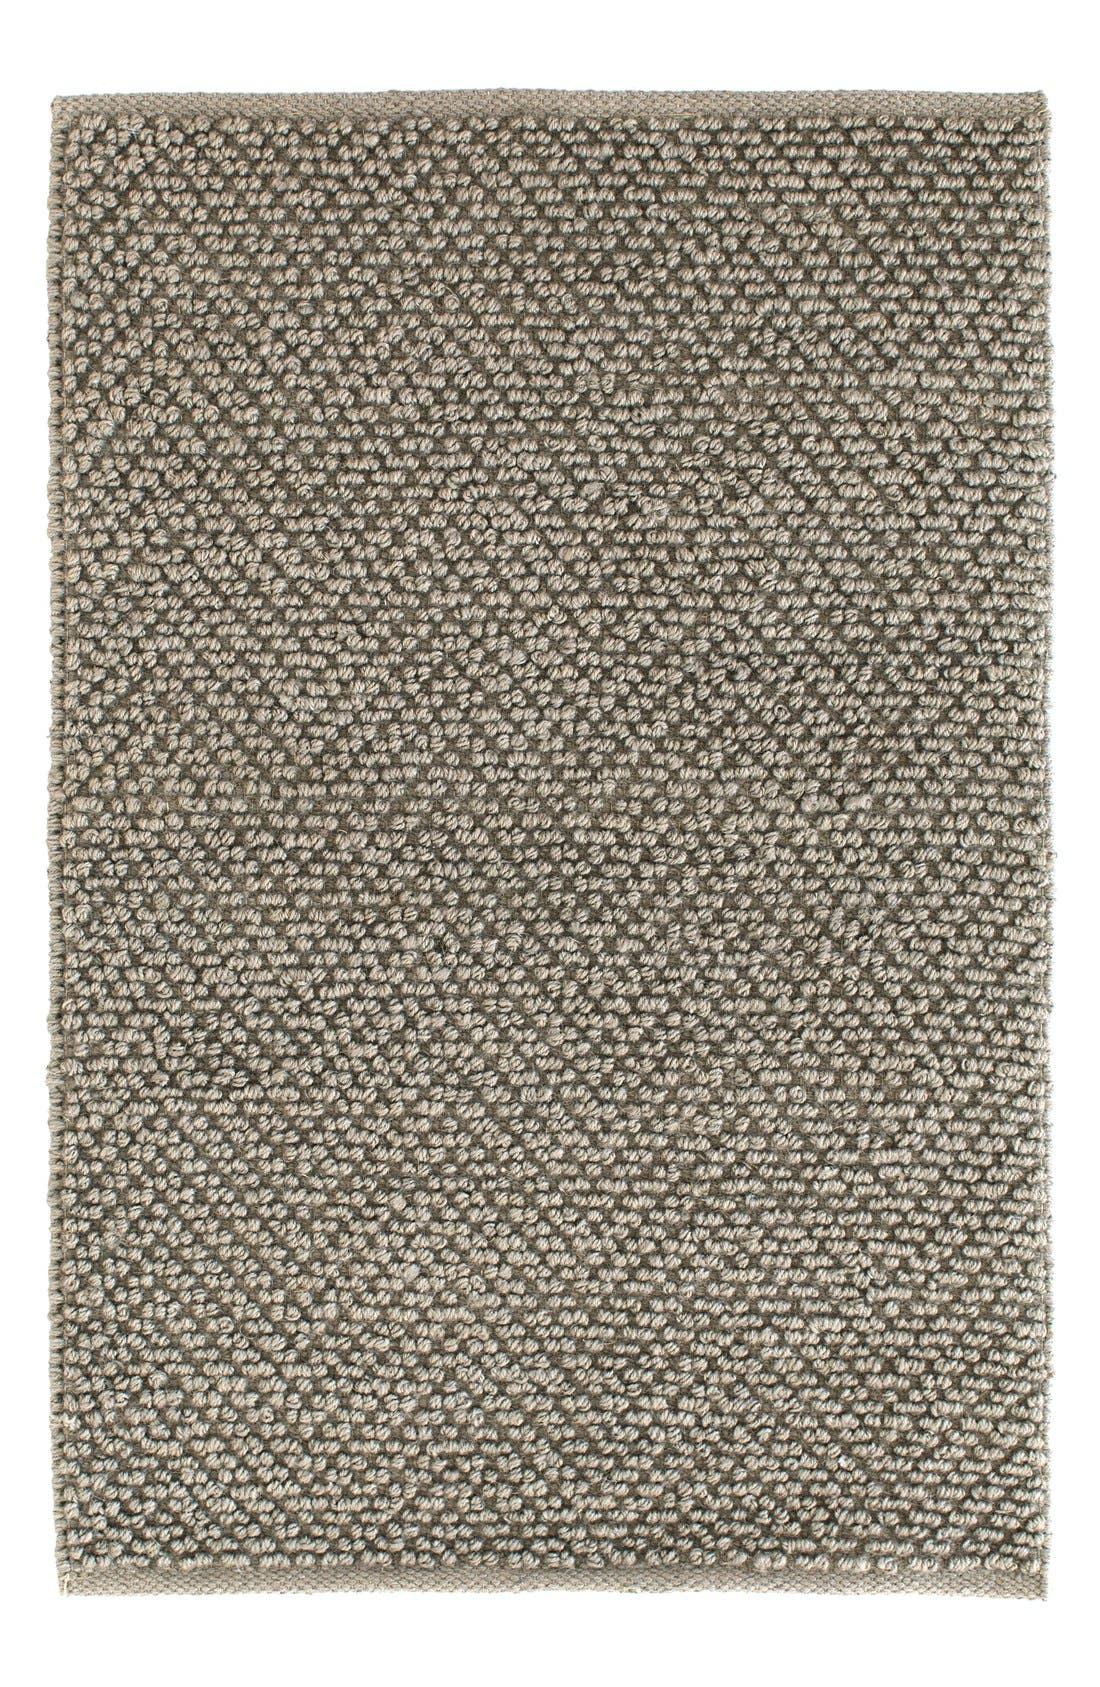 Woven Jute & Cotton Rug,                         Main,                         color, SILVER OAK